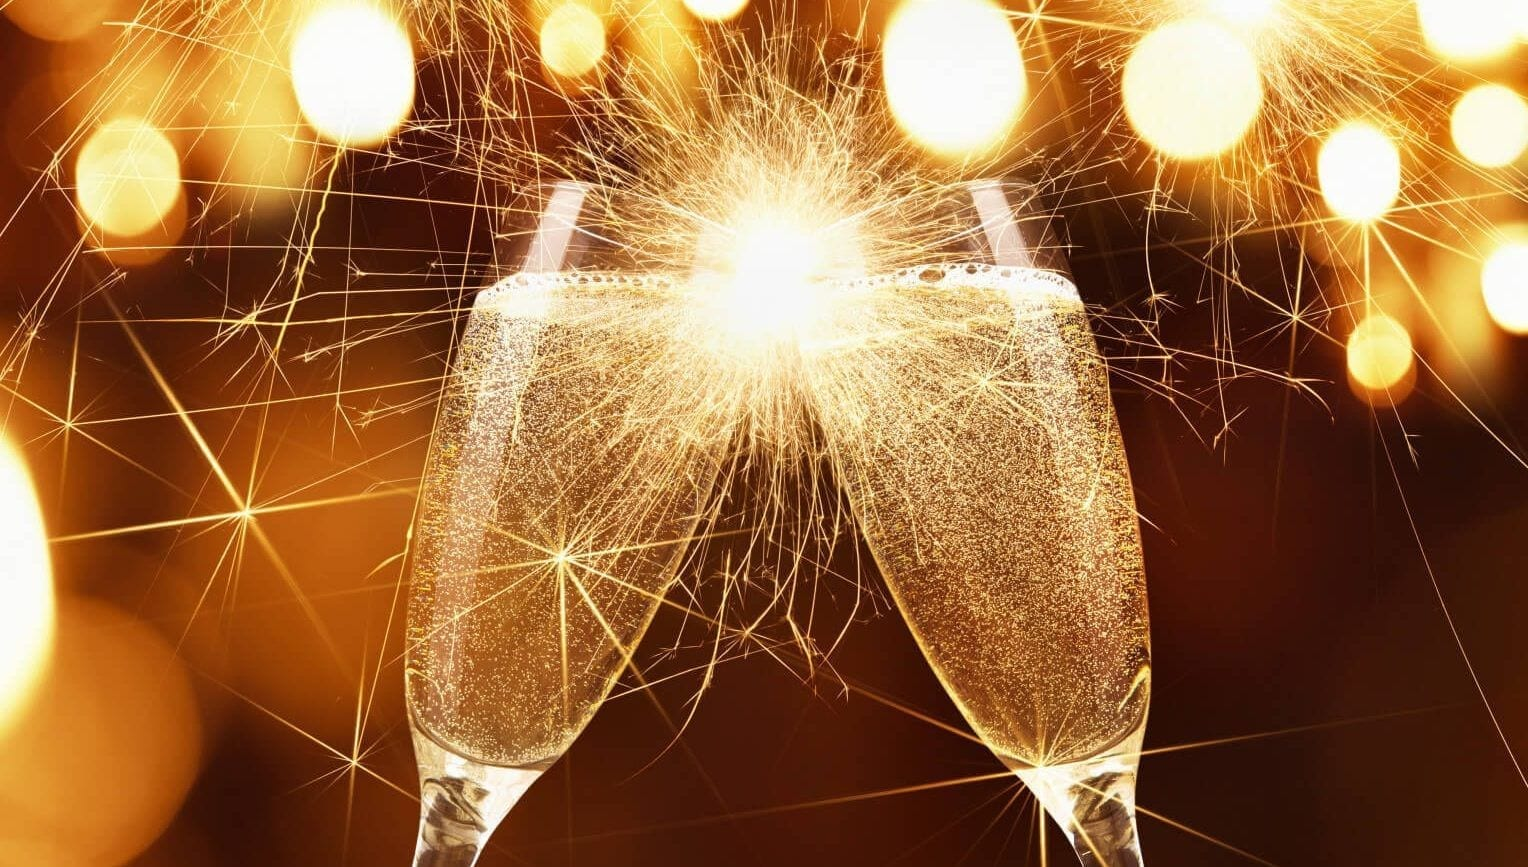 Sparkling Wines from NJ to Drink on New Year's Eve